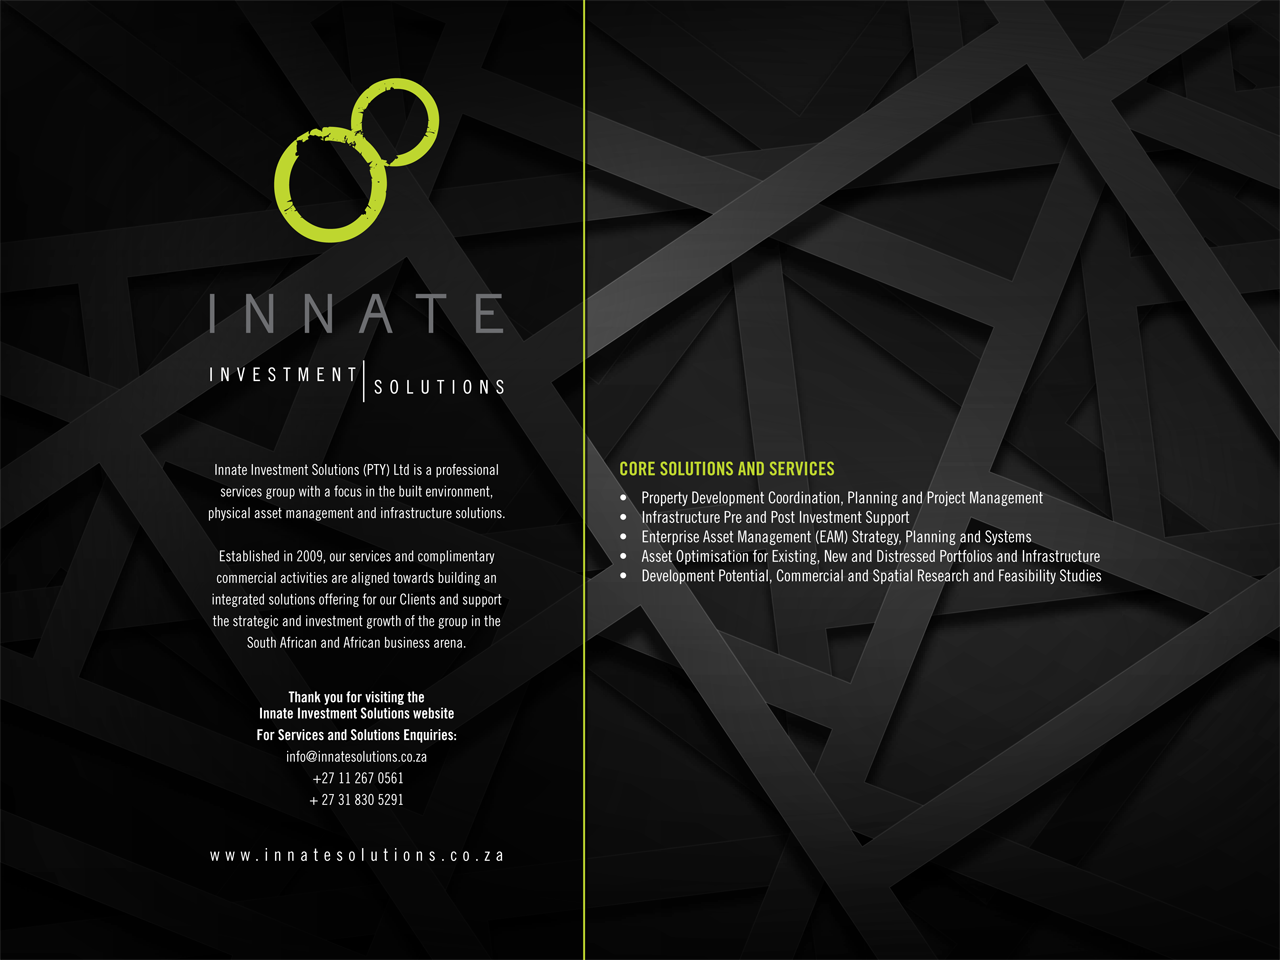 Innate Investment Solutions